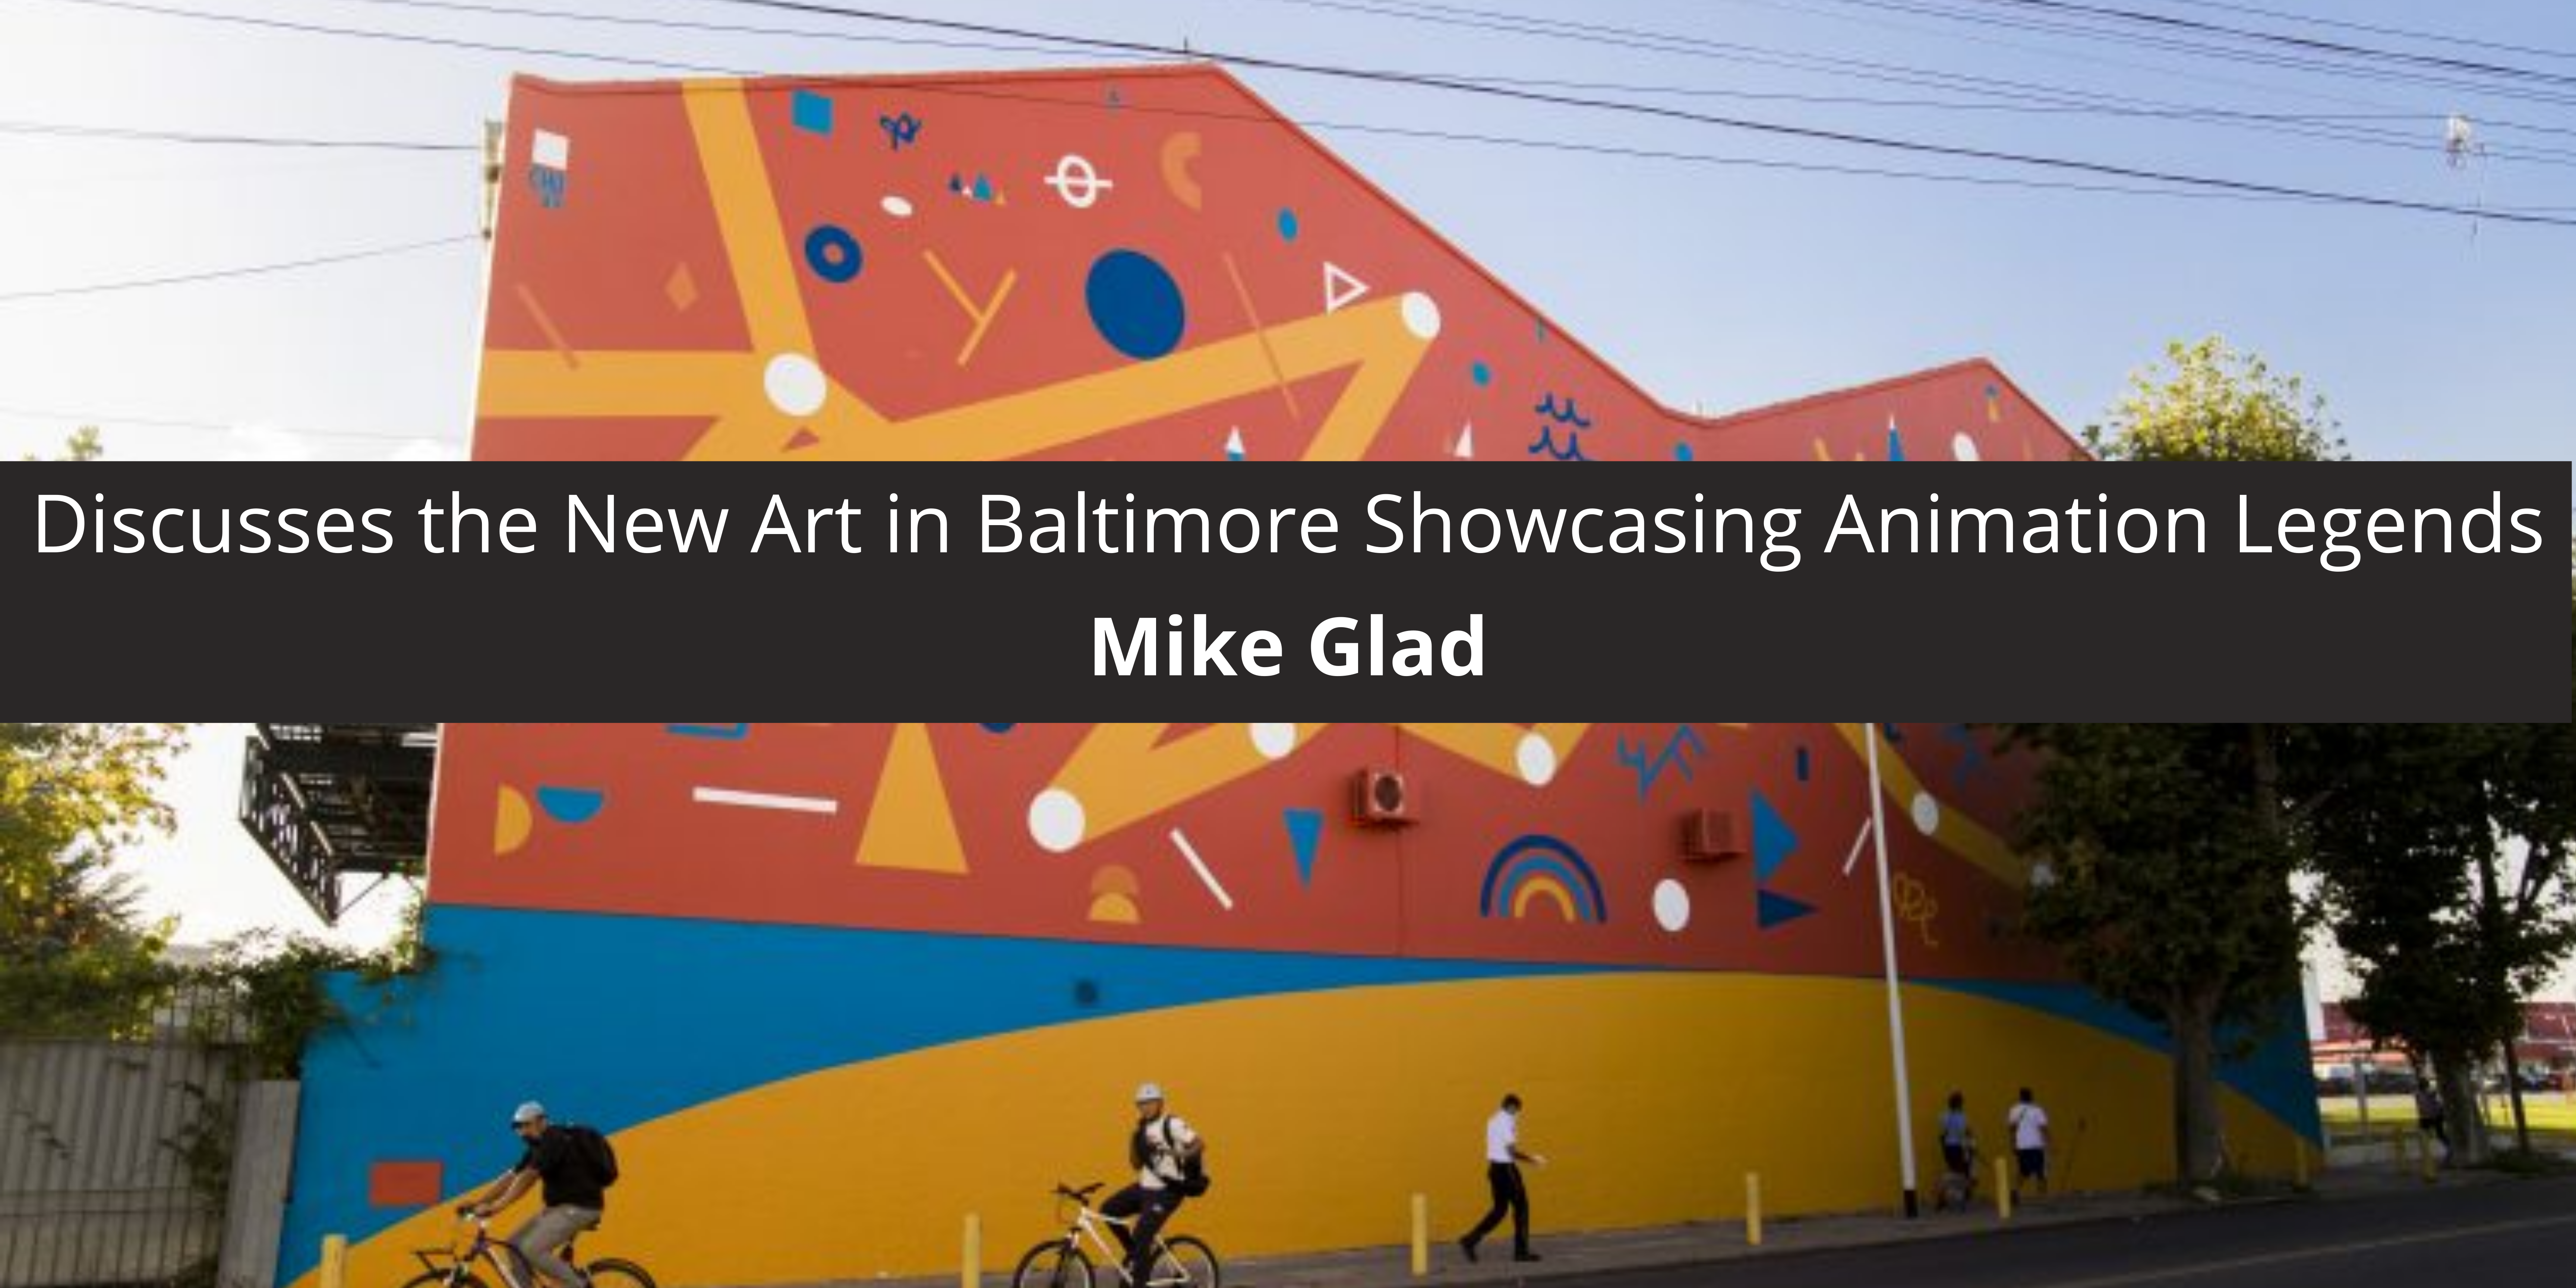 Mike Glad Discusses the New Art in Baltimore Showcasing Animation Legends